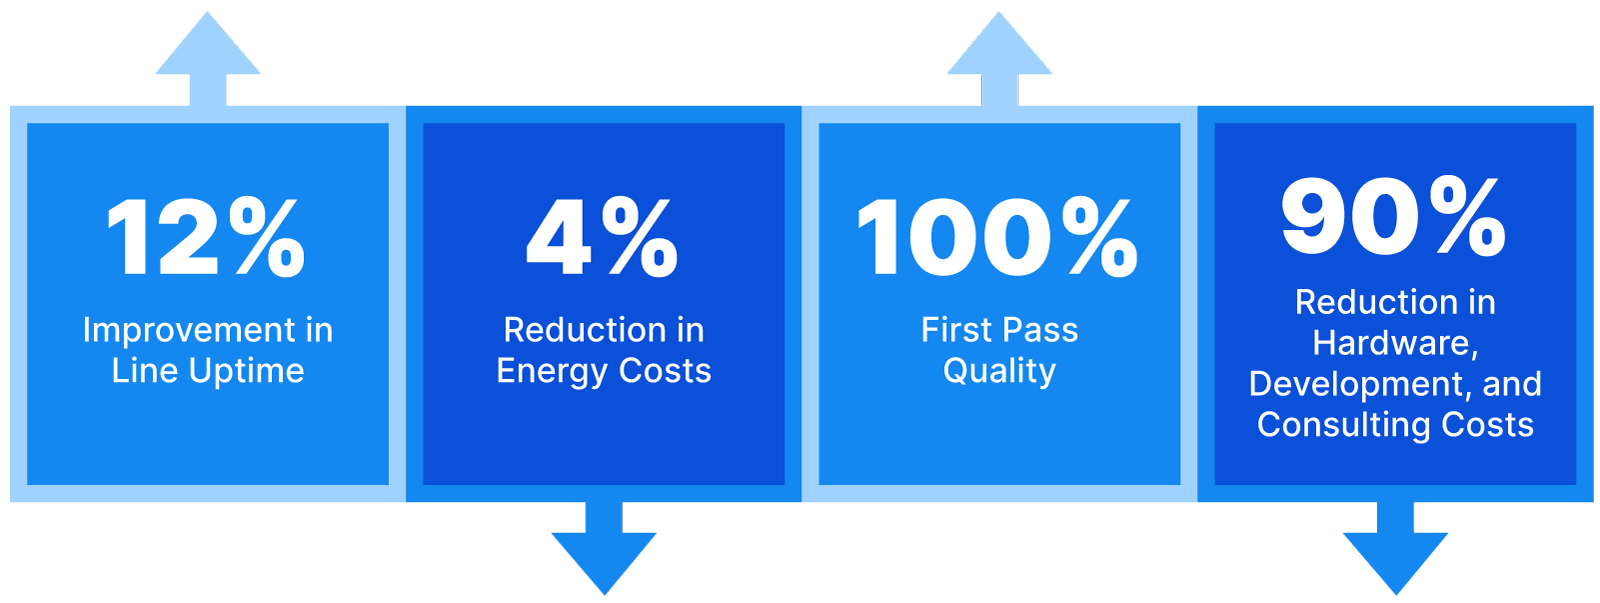 Our predictive technology produces the results you're looking to achieve, whether it's improved line uptime, reduced energy usage, enhanced quality, reduced hardware costs, and many more impactful factory KPIs.